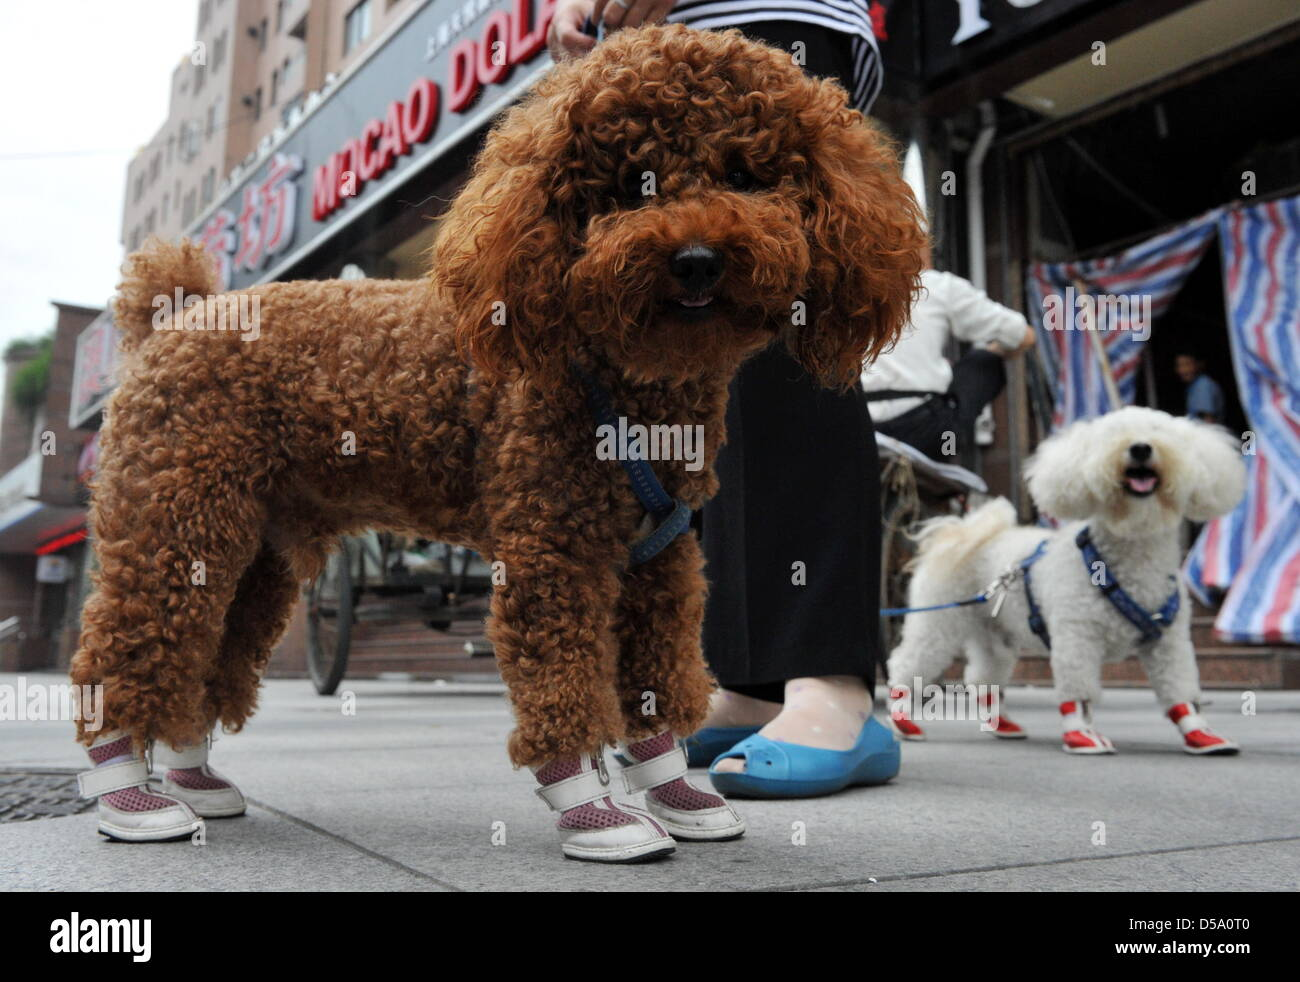 A chinese woman takes a walk with her poodles in Shanghai, China on 10 July 2010. Both animals wear shoes with hook - Stock Image